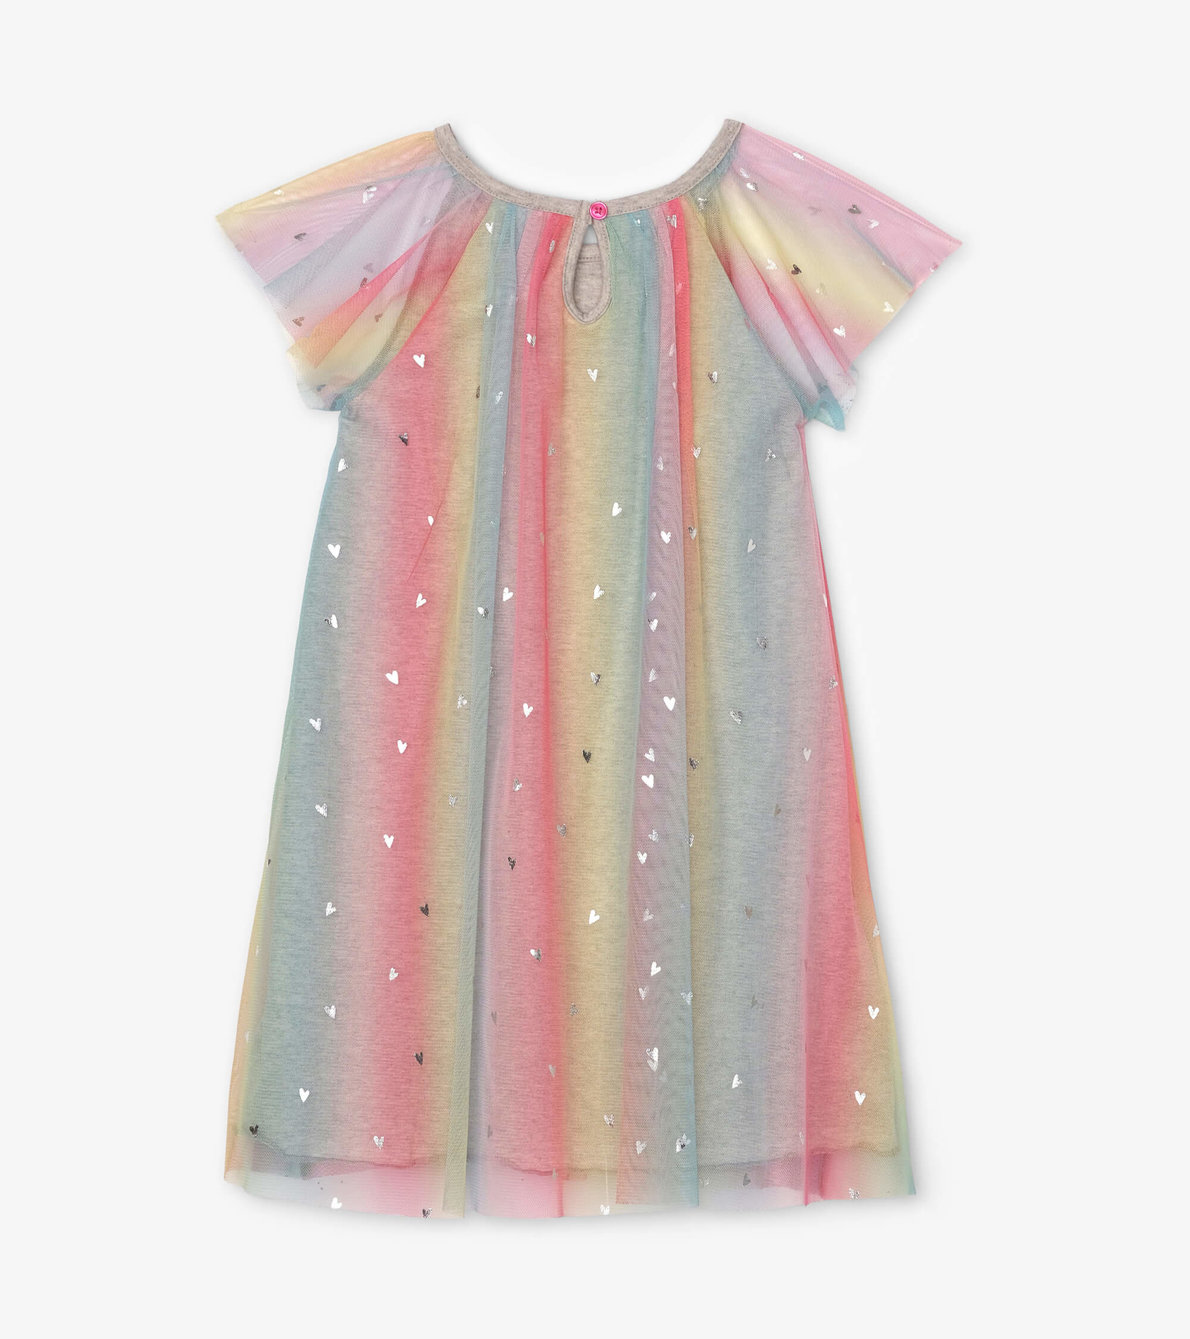 View larger image of Metallic Hearts Rainbow Tulle Dress